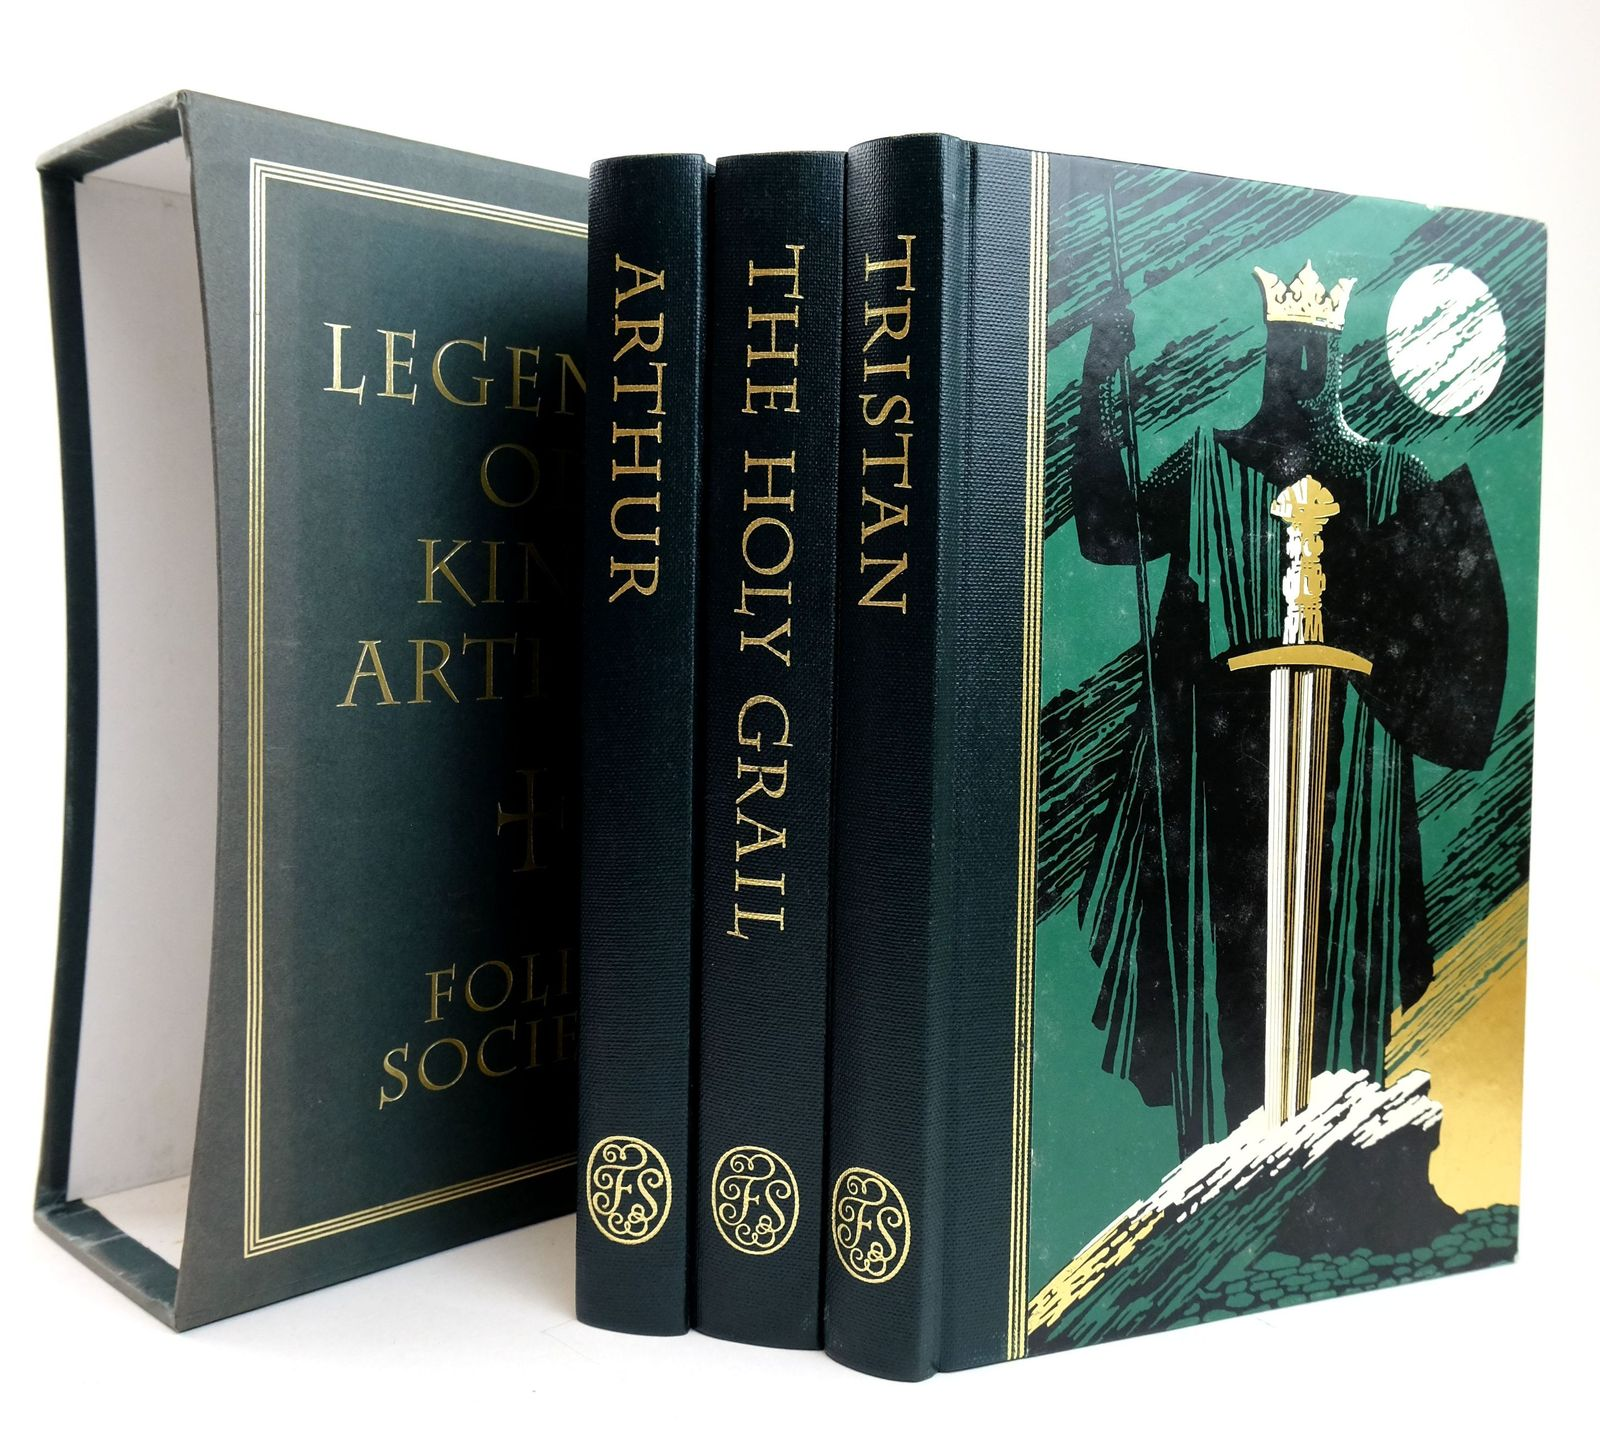 Photo of LEGENDS OF KING ARTHUR (3 VOLUME SET) written by Barber, Richard illustrated by Pisarev, Roman published by Folio Society (STOCK CODE: 1819078)  for sale by Stella & Rose's Books